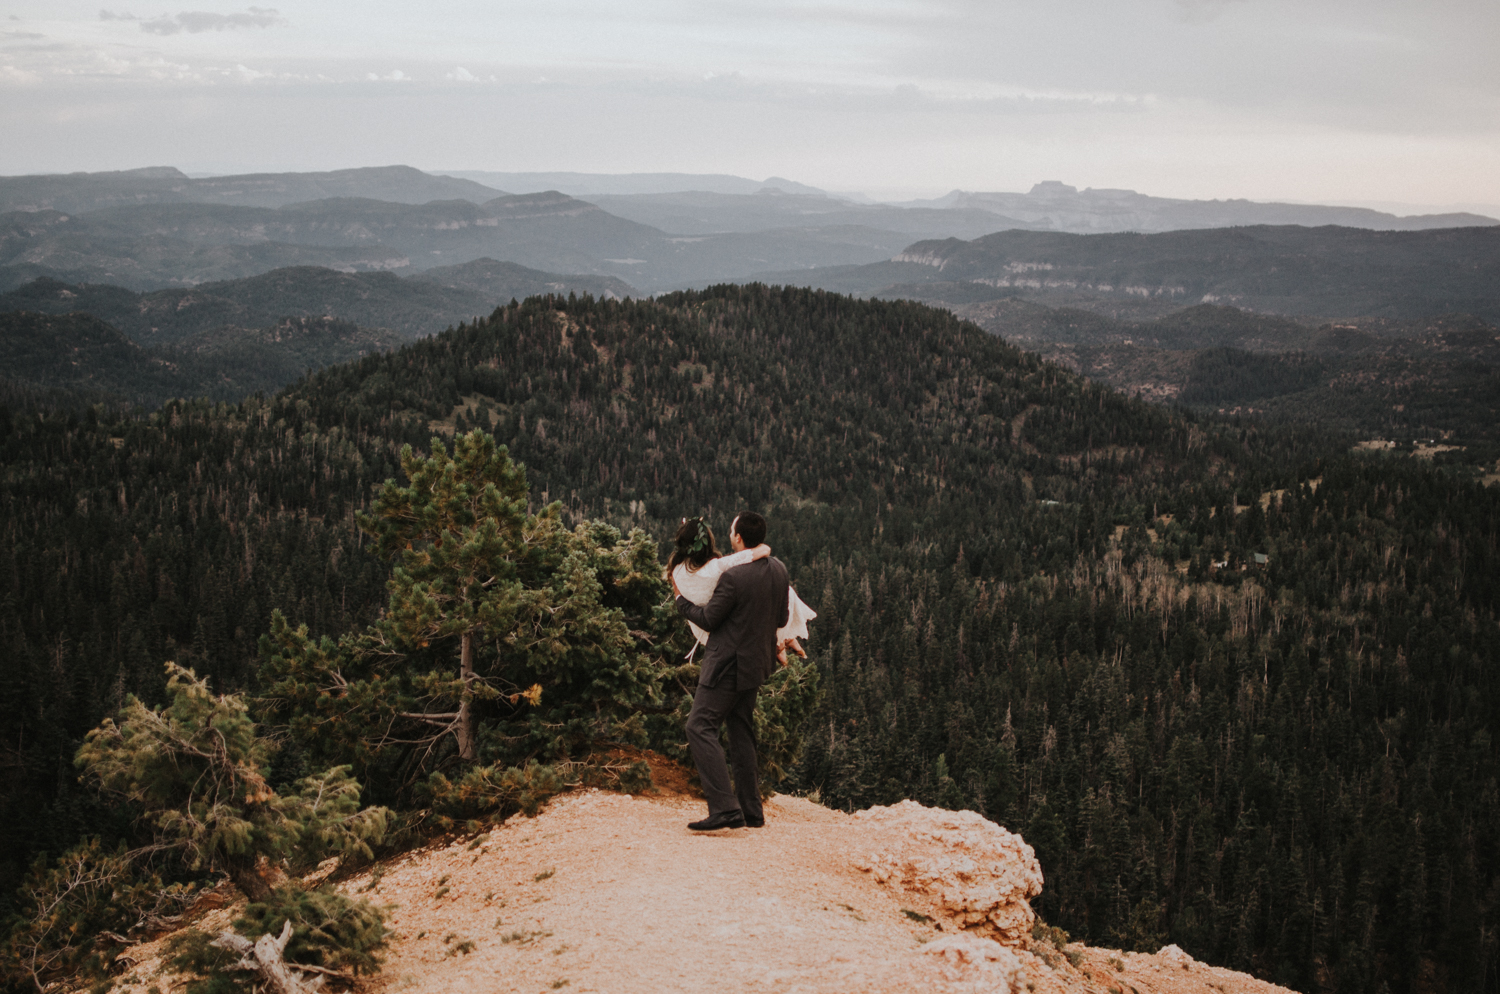 southern utah bryce canyon adventurous elopement with mountain landscape simply amor photography